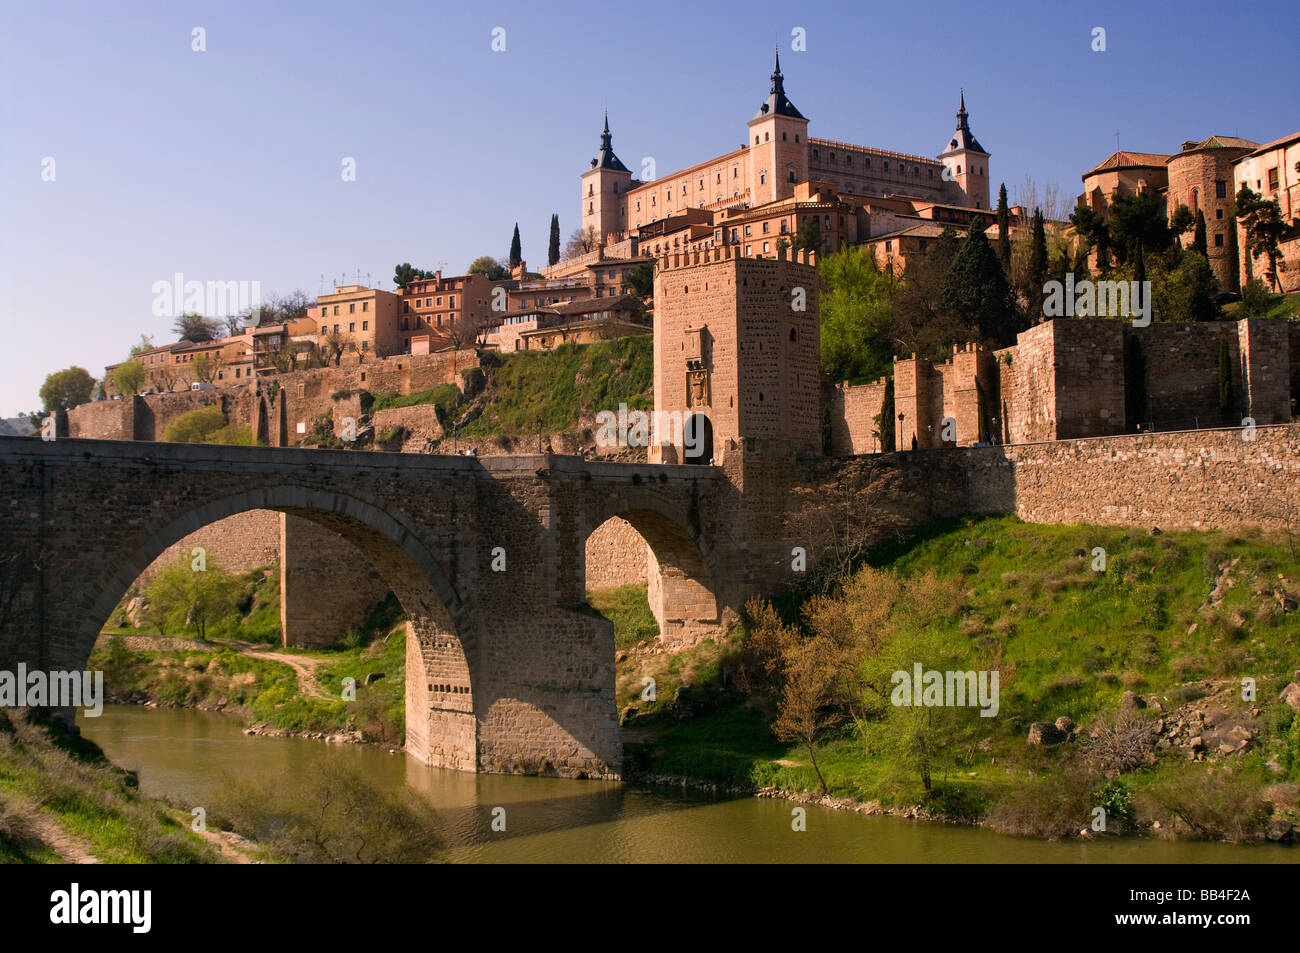 Acceso a la ciudad de Toledo por el puente de Alcantara. Access to the city of Toledo on the bridge of Alcantara. - Stock Image